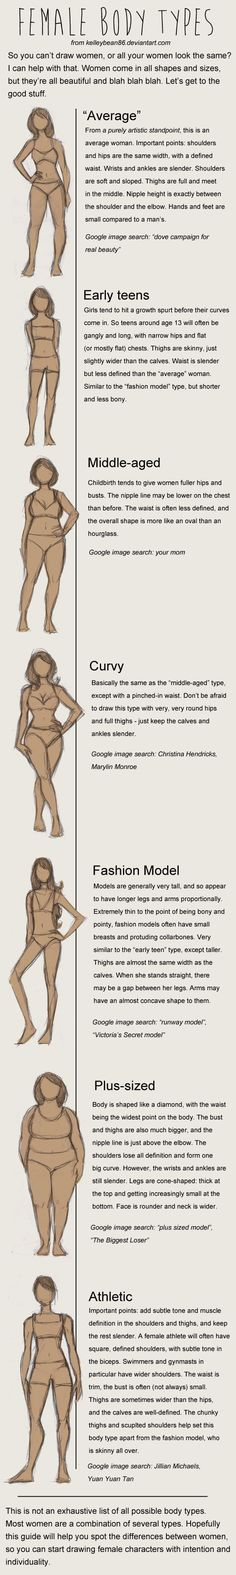 I know I've already saved this, but it's just so helpful! This is one of my favourite body references. I also love that it doesn't mention hight for the athletic body type!